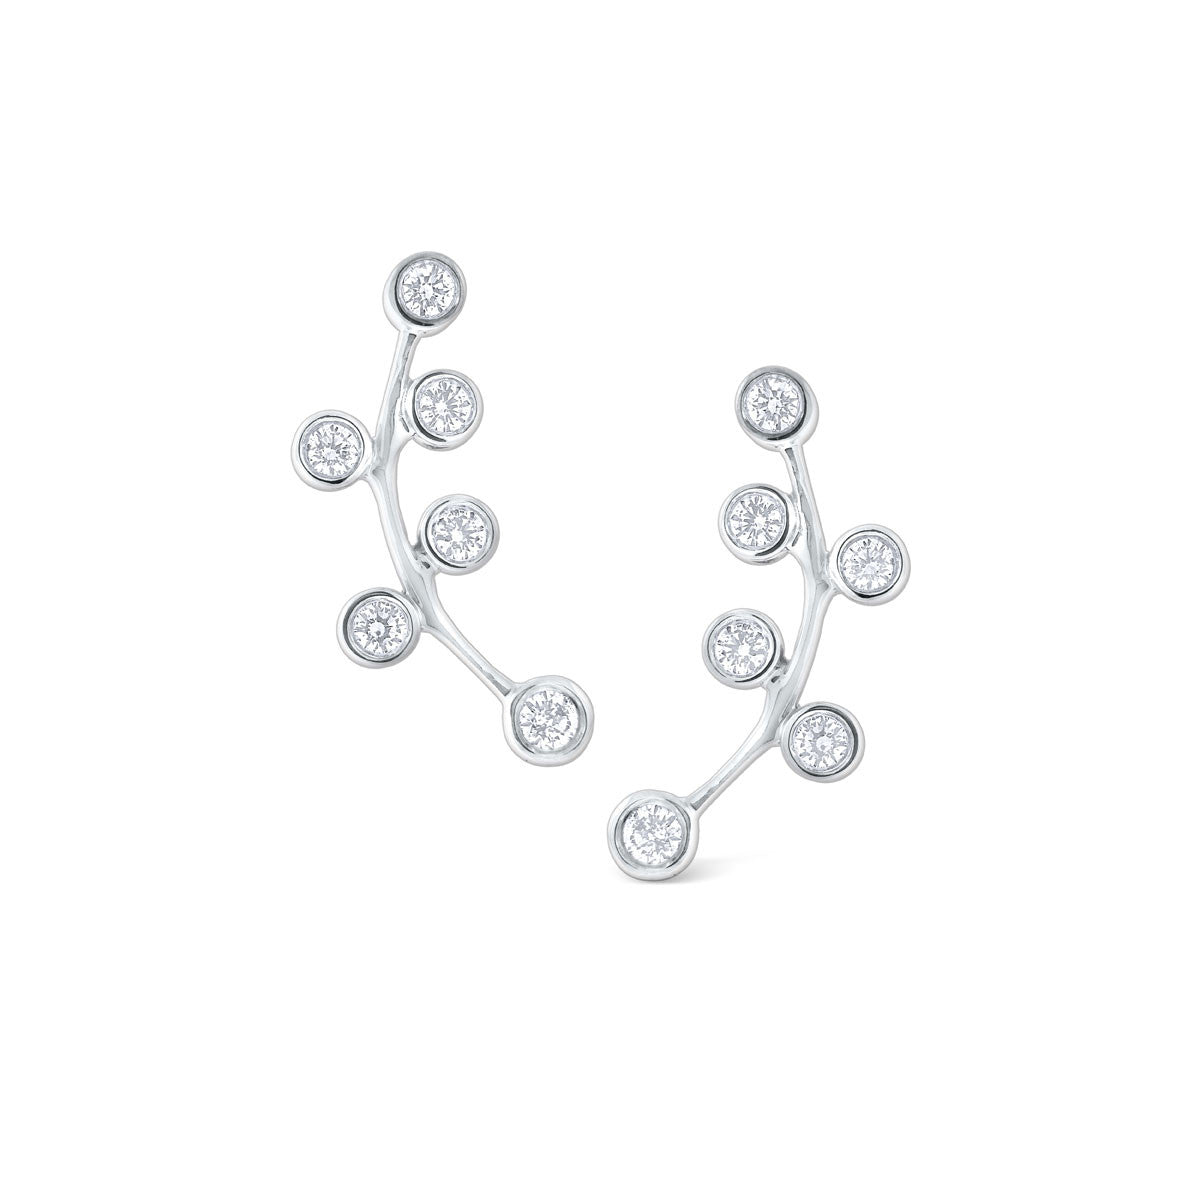 14K White Gold Bezel Set Diamond Ear Climbers